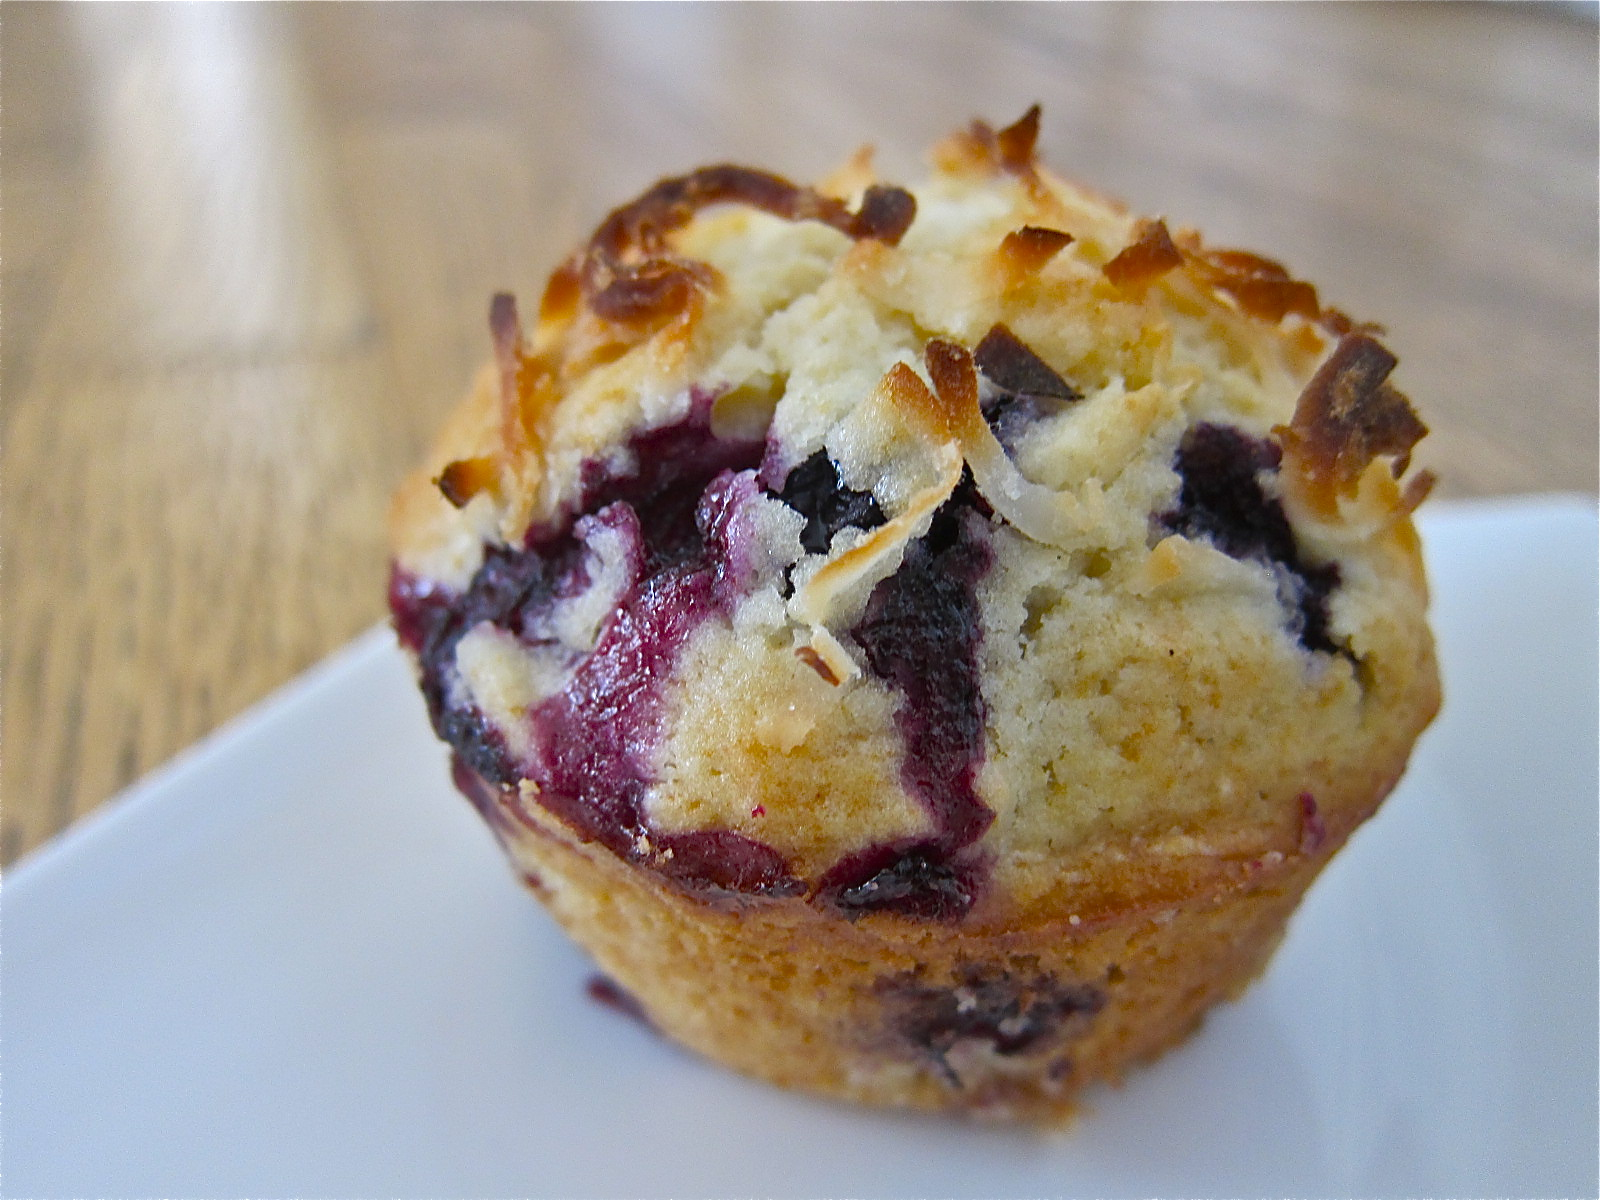 Monday has quickly rolled around again, so to start the week off right I made you muffins. Each week our group of Muffin Monday bakers gathers to bake a new ...